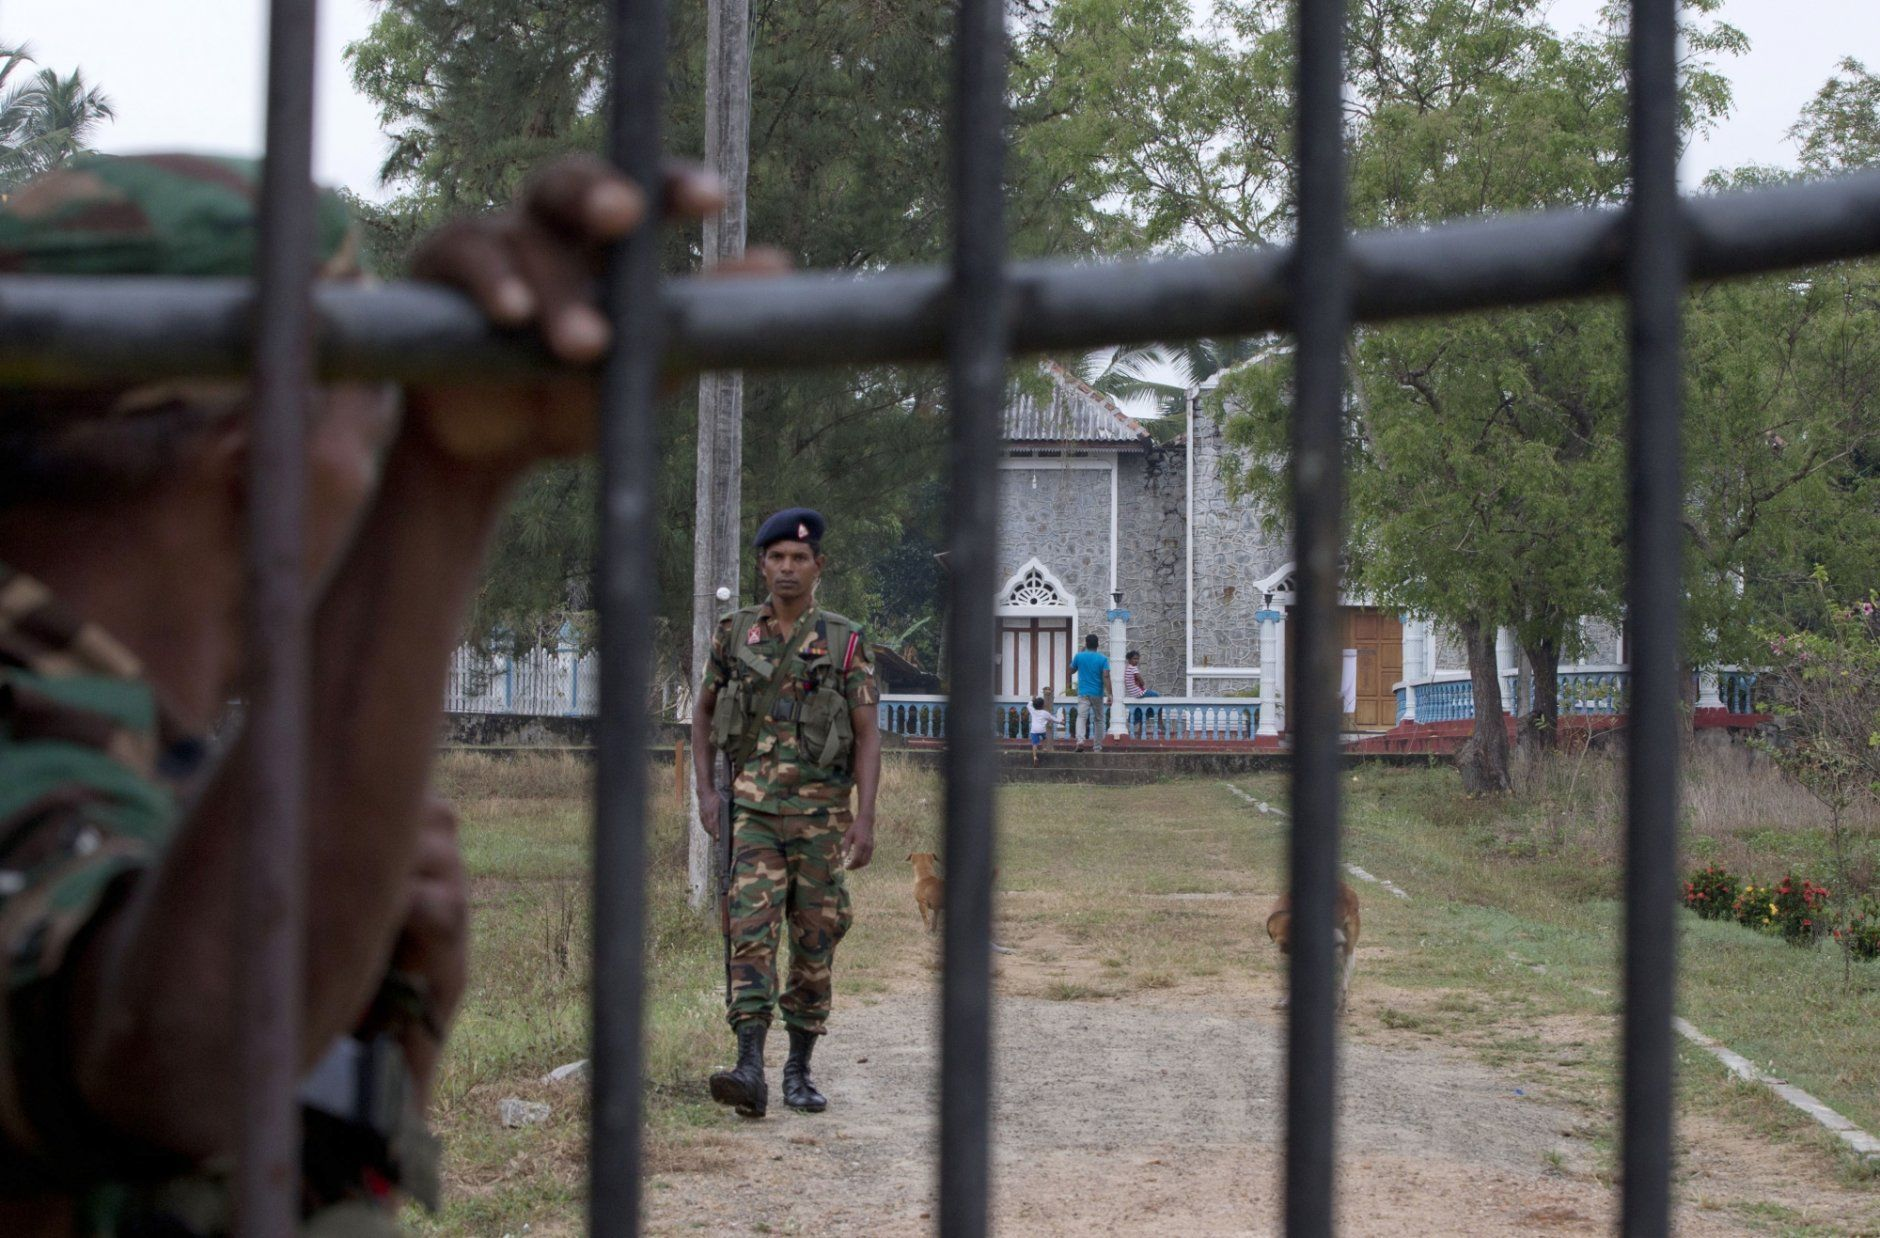 Soldiers stand guard at a church garden with a locked gate in Ampara, Sri Lanka, Sunday, April 28, 2019. Sri Lanka's Catholics on Sunday awoke preparing to celebrate Mass in their homes by a televised broadcast as churches across the island shut over fears of militant attacks, a week after the Islamic State-claimed Easter suicide bombings. (AP Photo/Gemunu Amarasinghe)